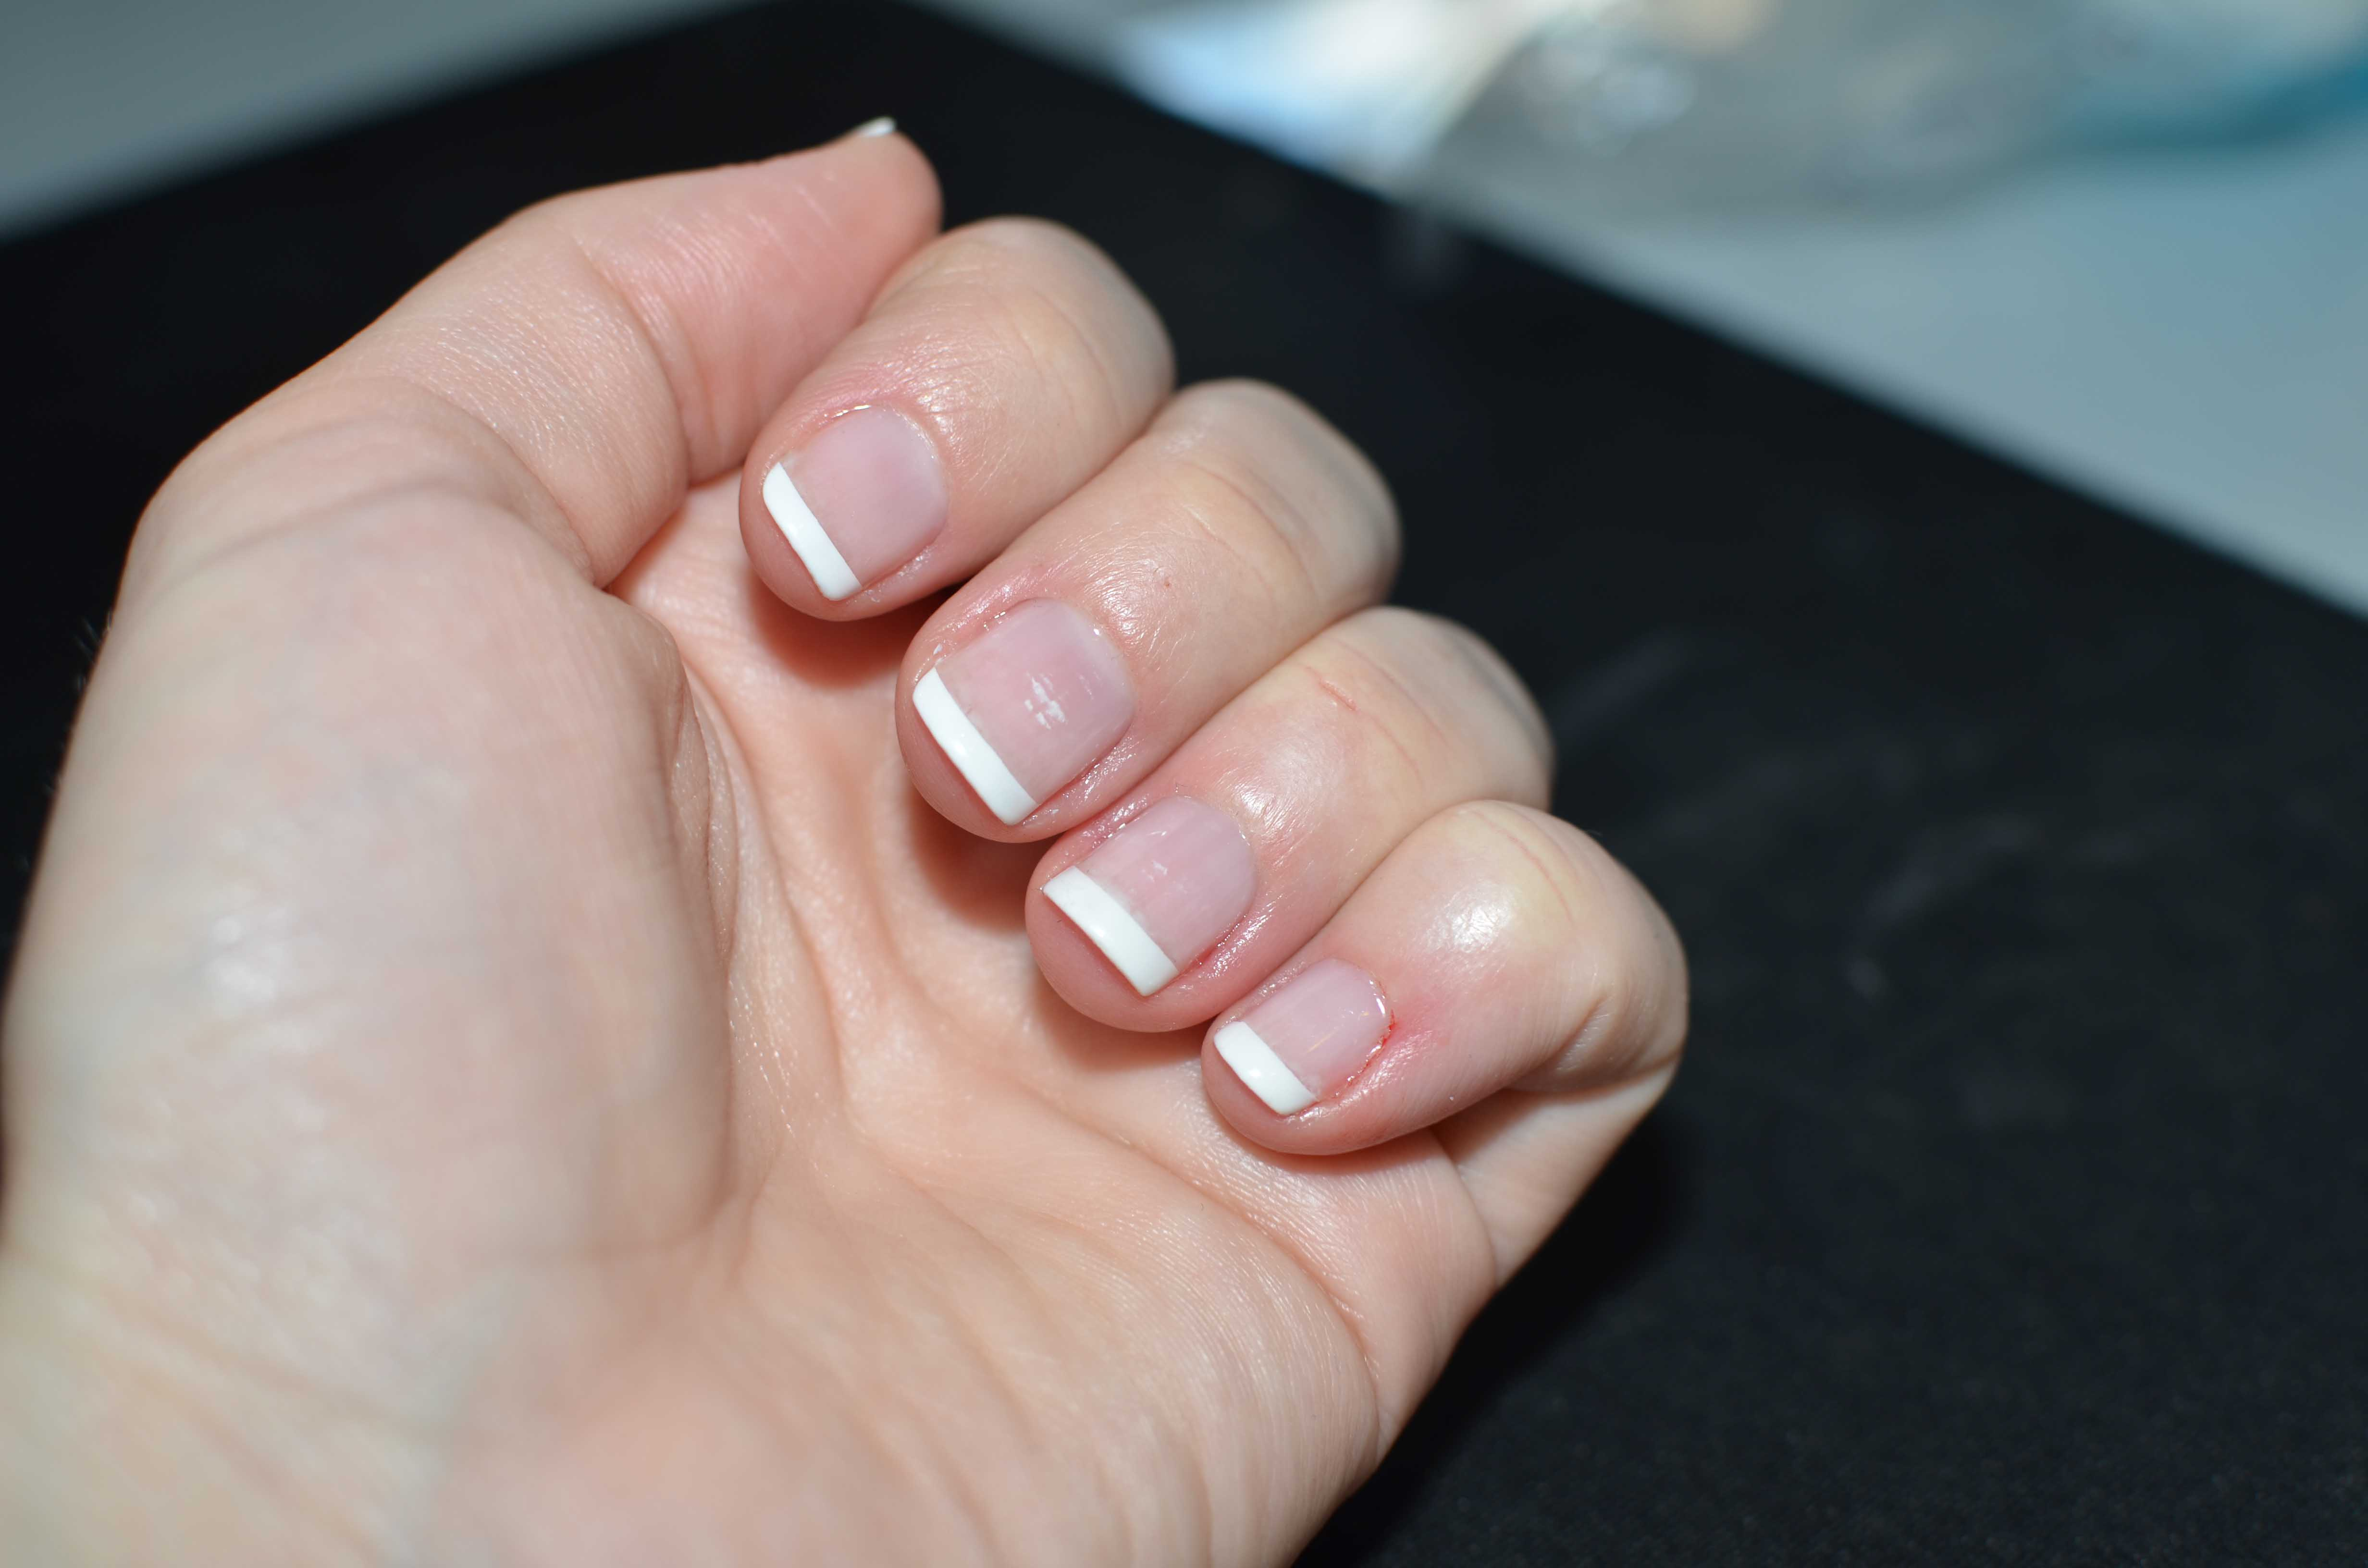 French tip gel nails - Expression Nails